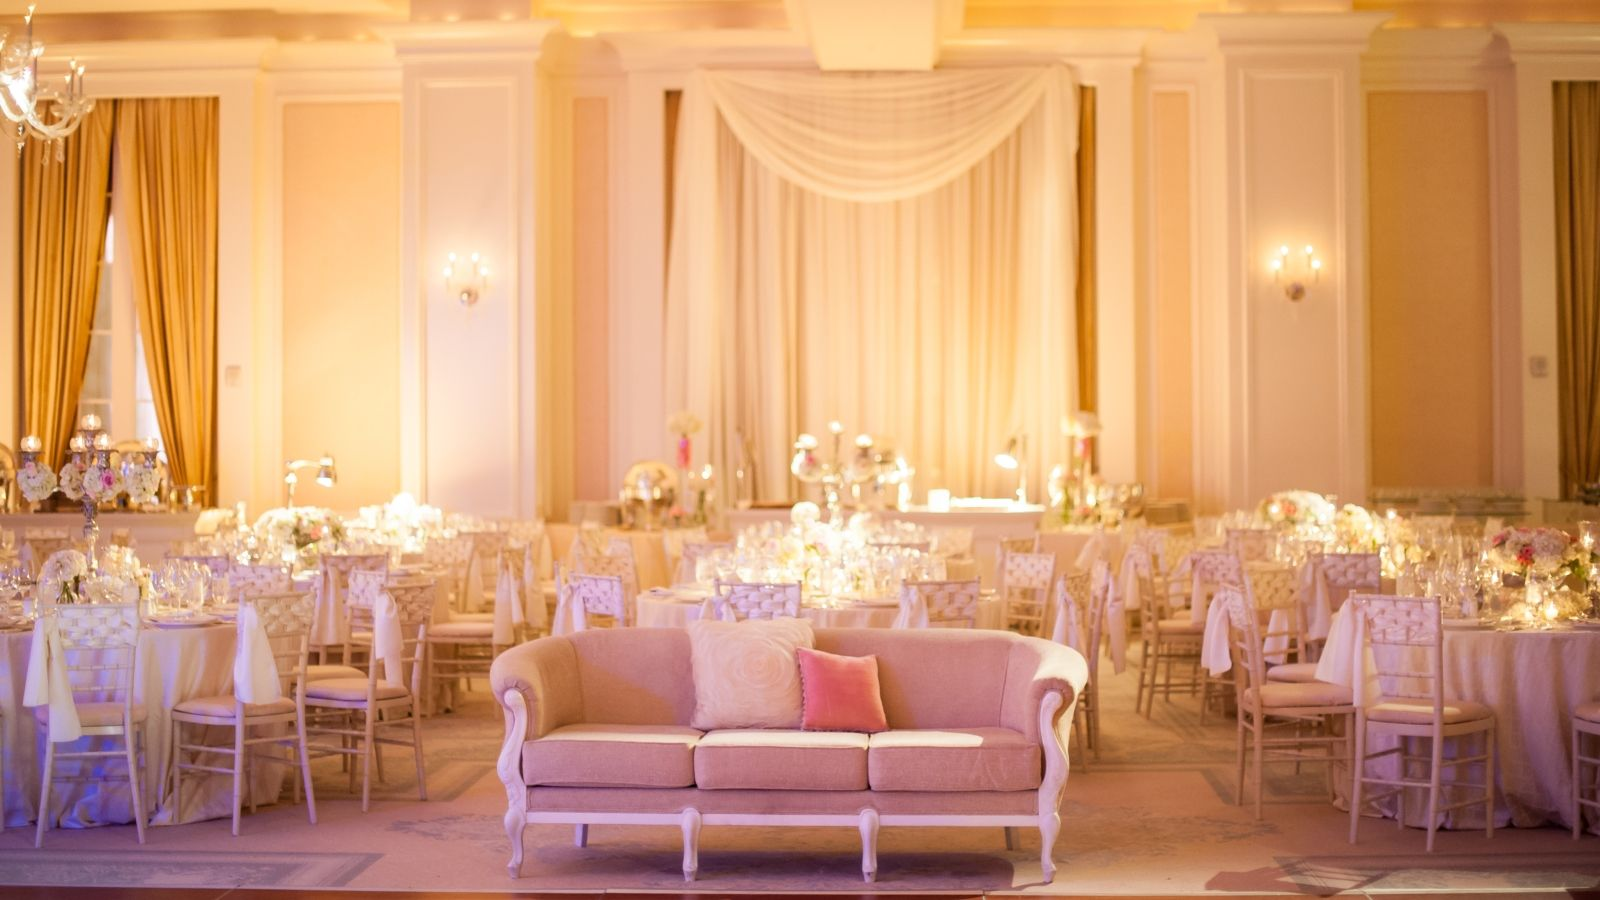 Wedding Venues in Atlanta - The St. Regis Atlanta